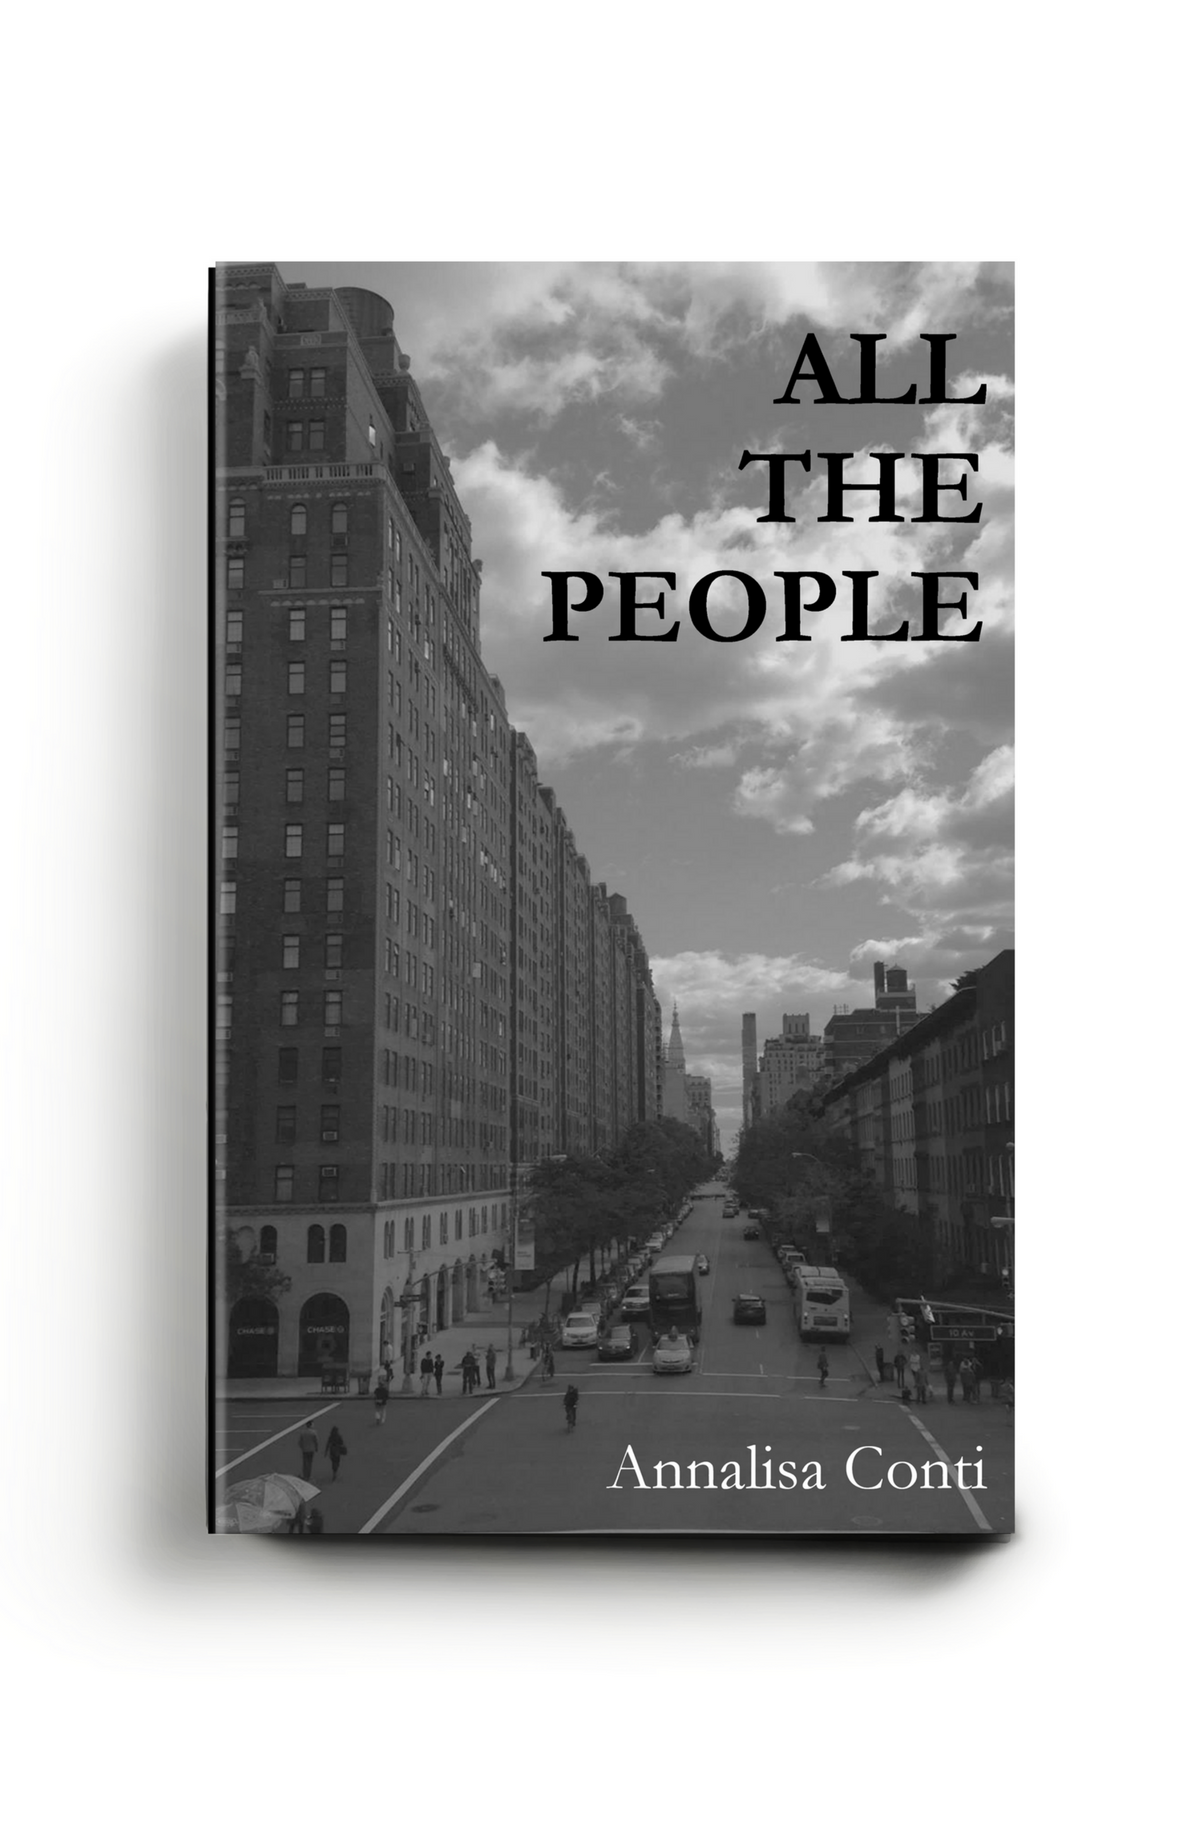 All The People by Annalisa Conti